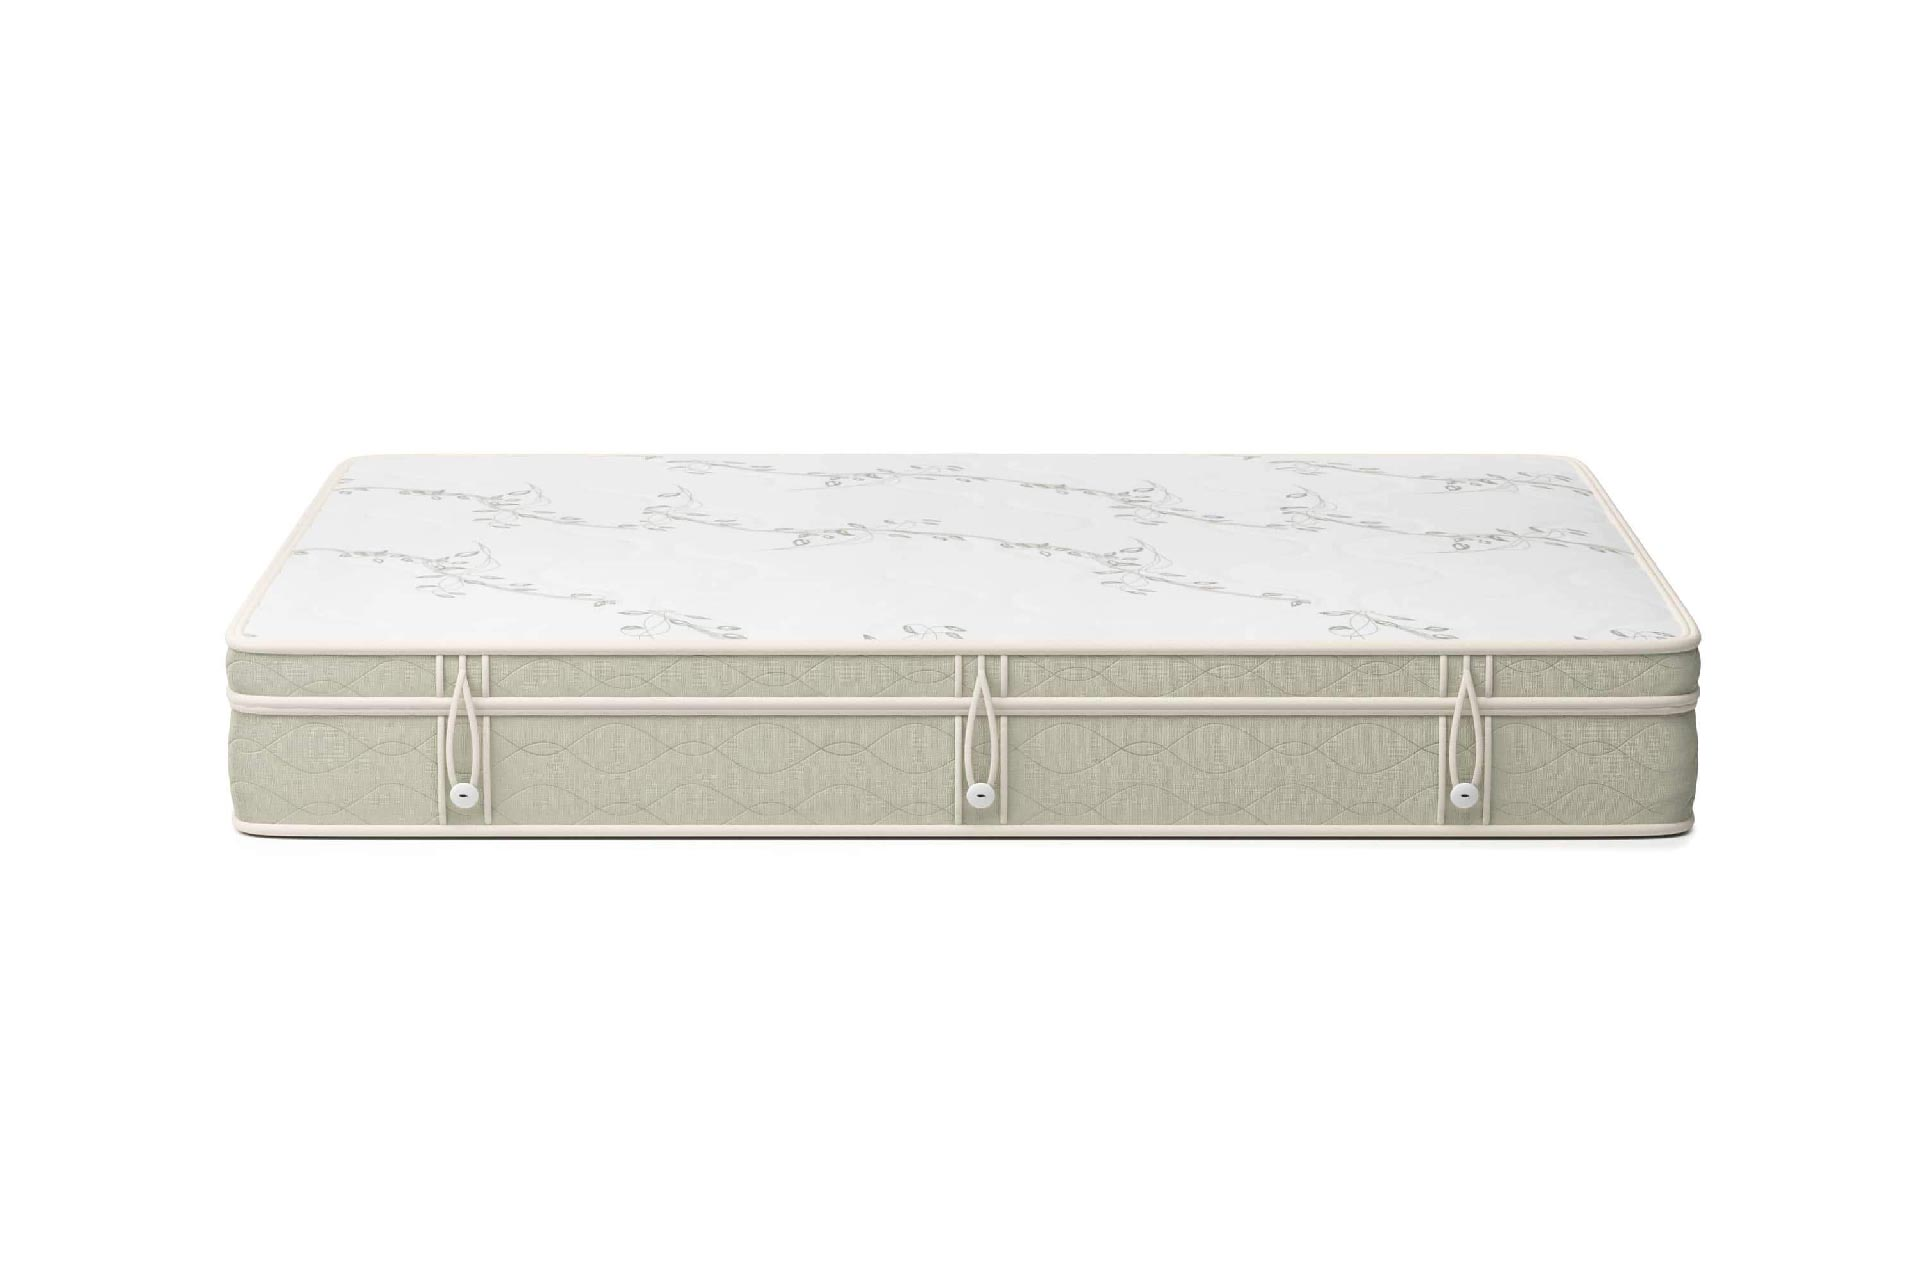 OrganicPedic Terra Mattress Side View